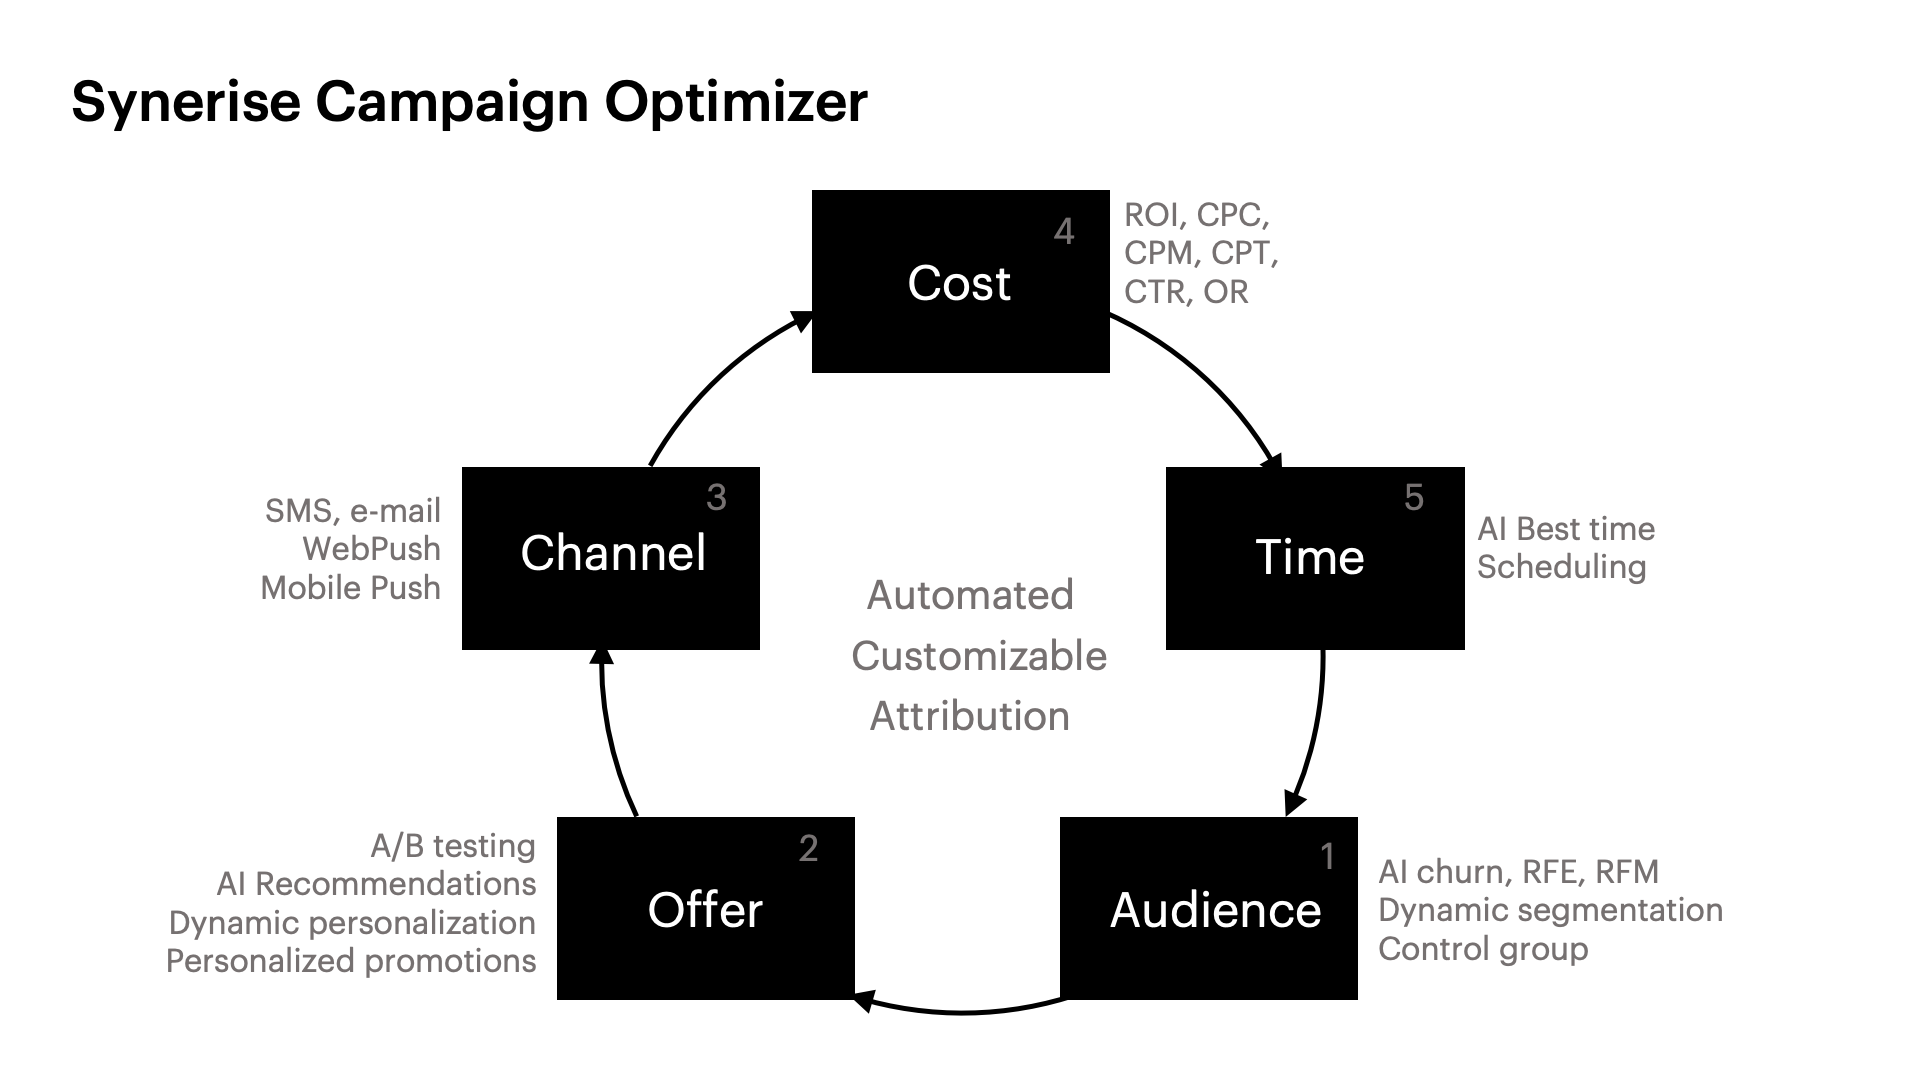 Synerise Campaign Optimizer Chart presenting automated customizable attribution